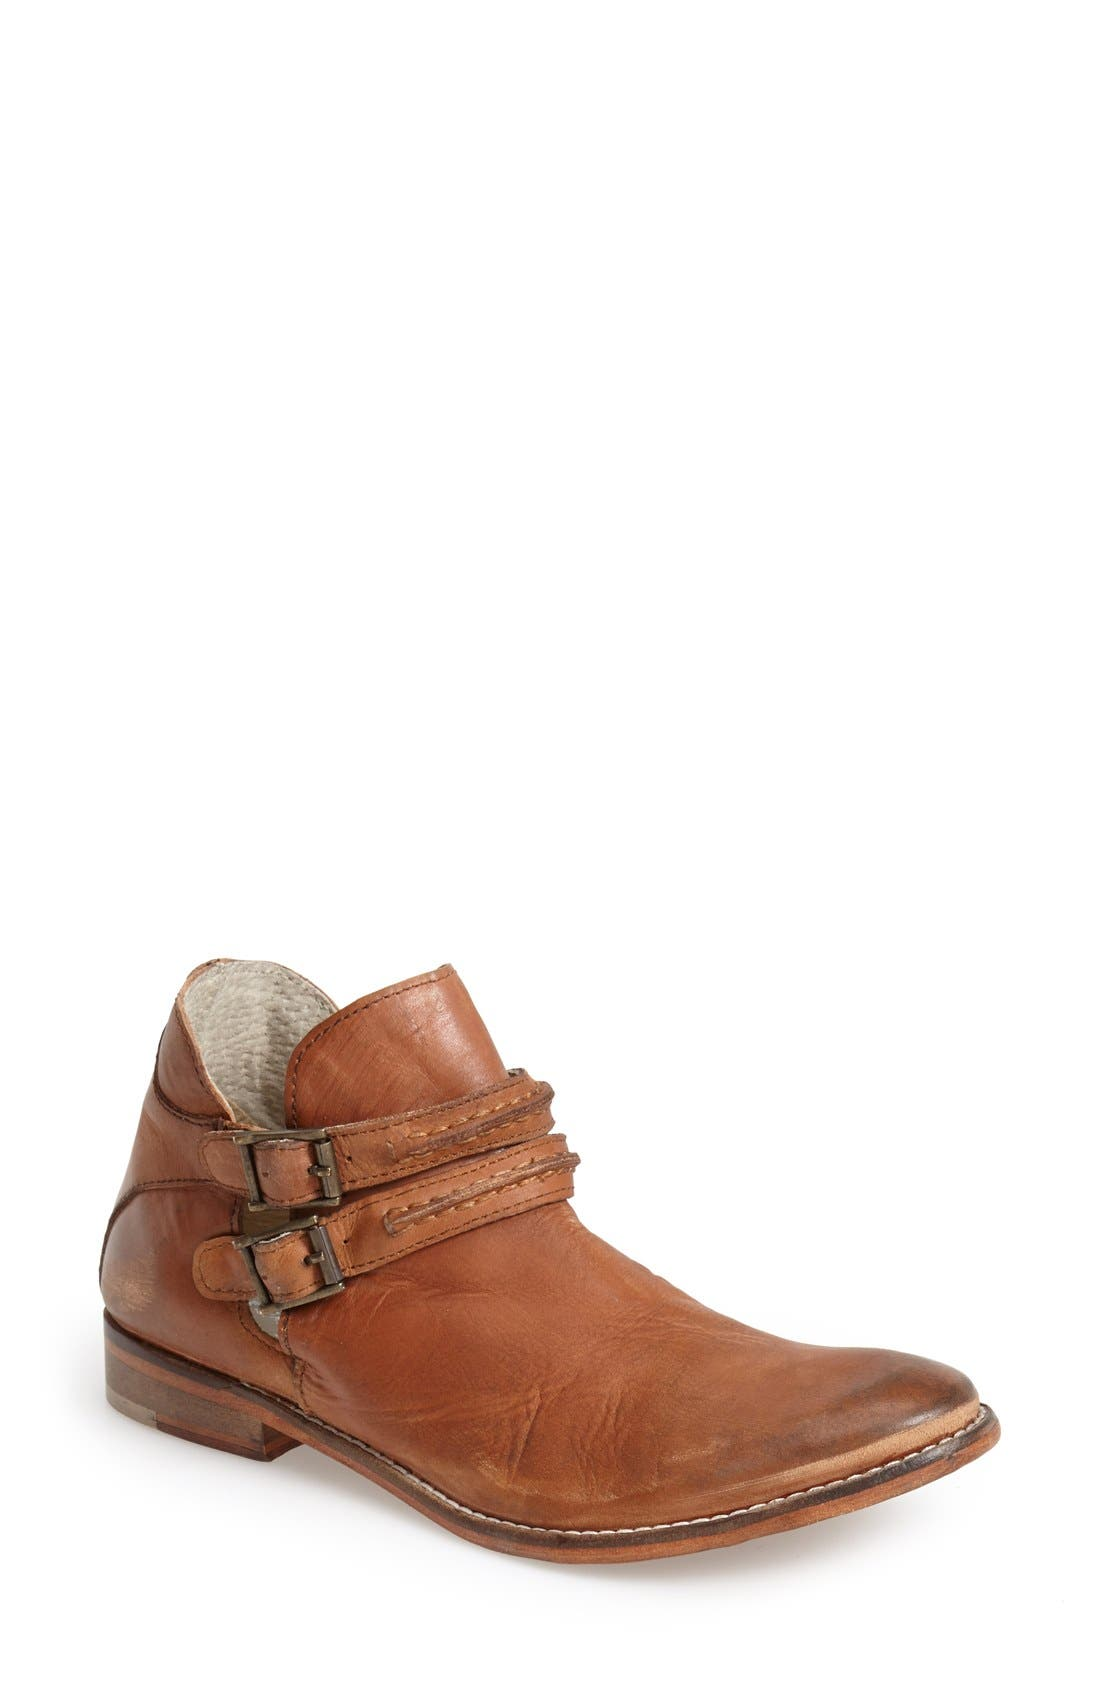 Alternate Image 1 Selected - Free People 'Braeburn' Belted Split Shaft Bootie (Women)